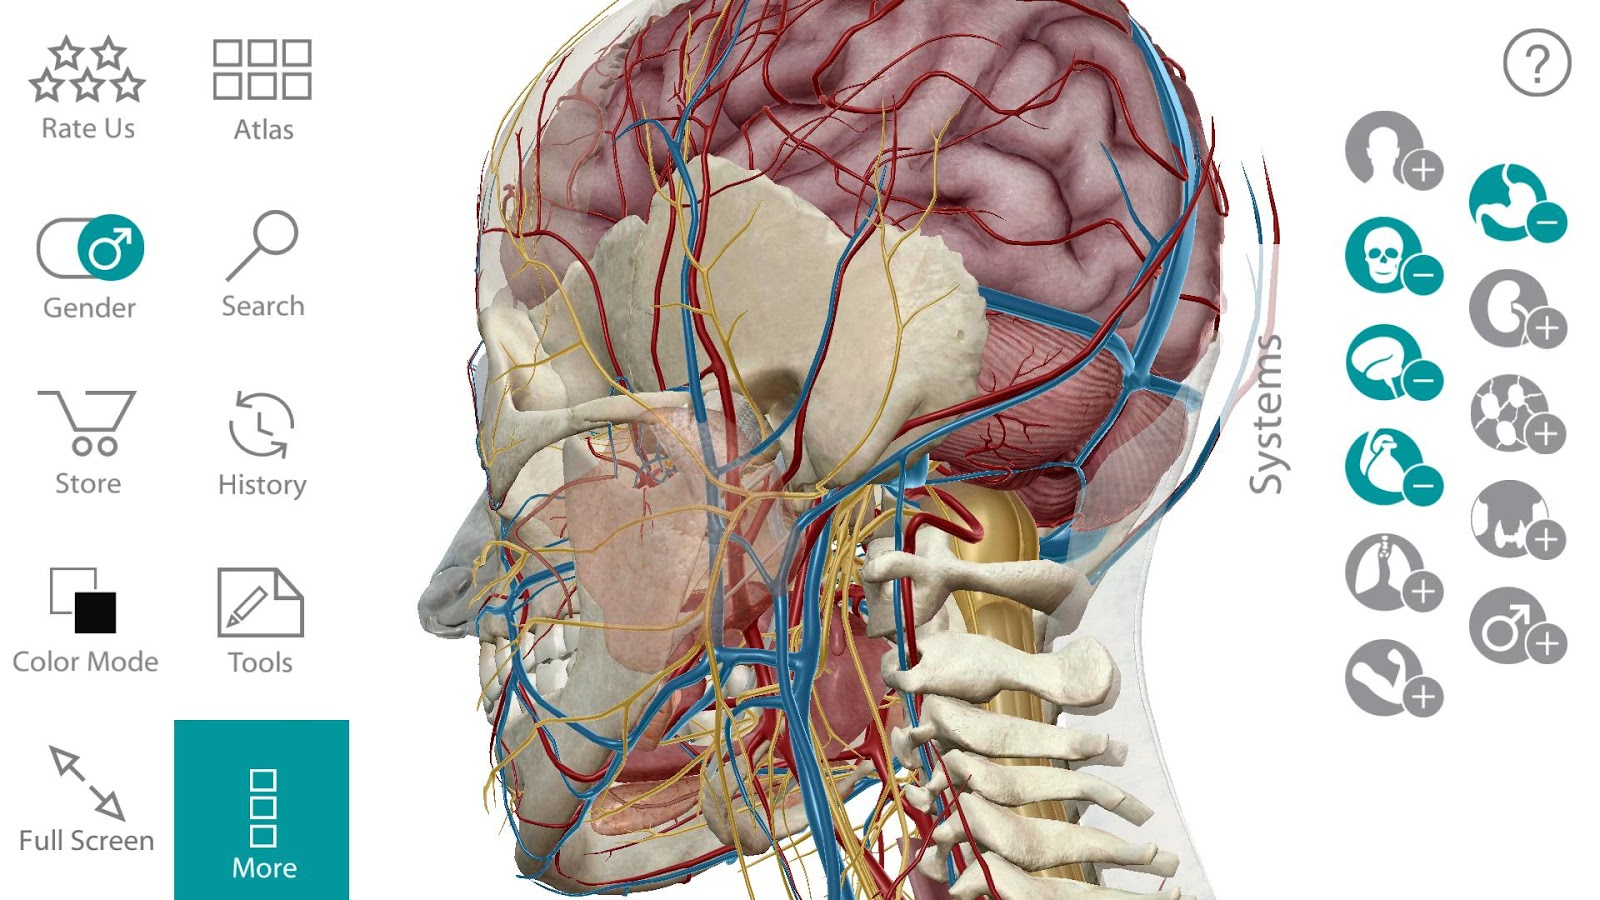 Anatomy Learning 3d Atlas Image collections - human body anatomy